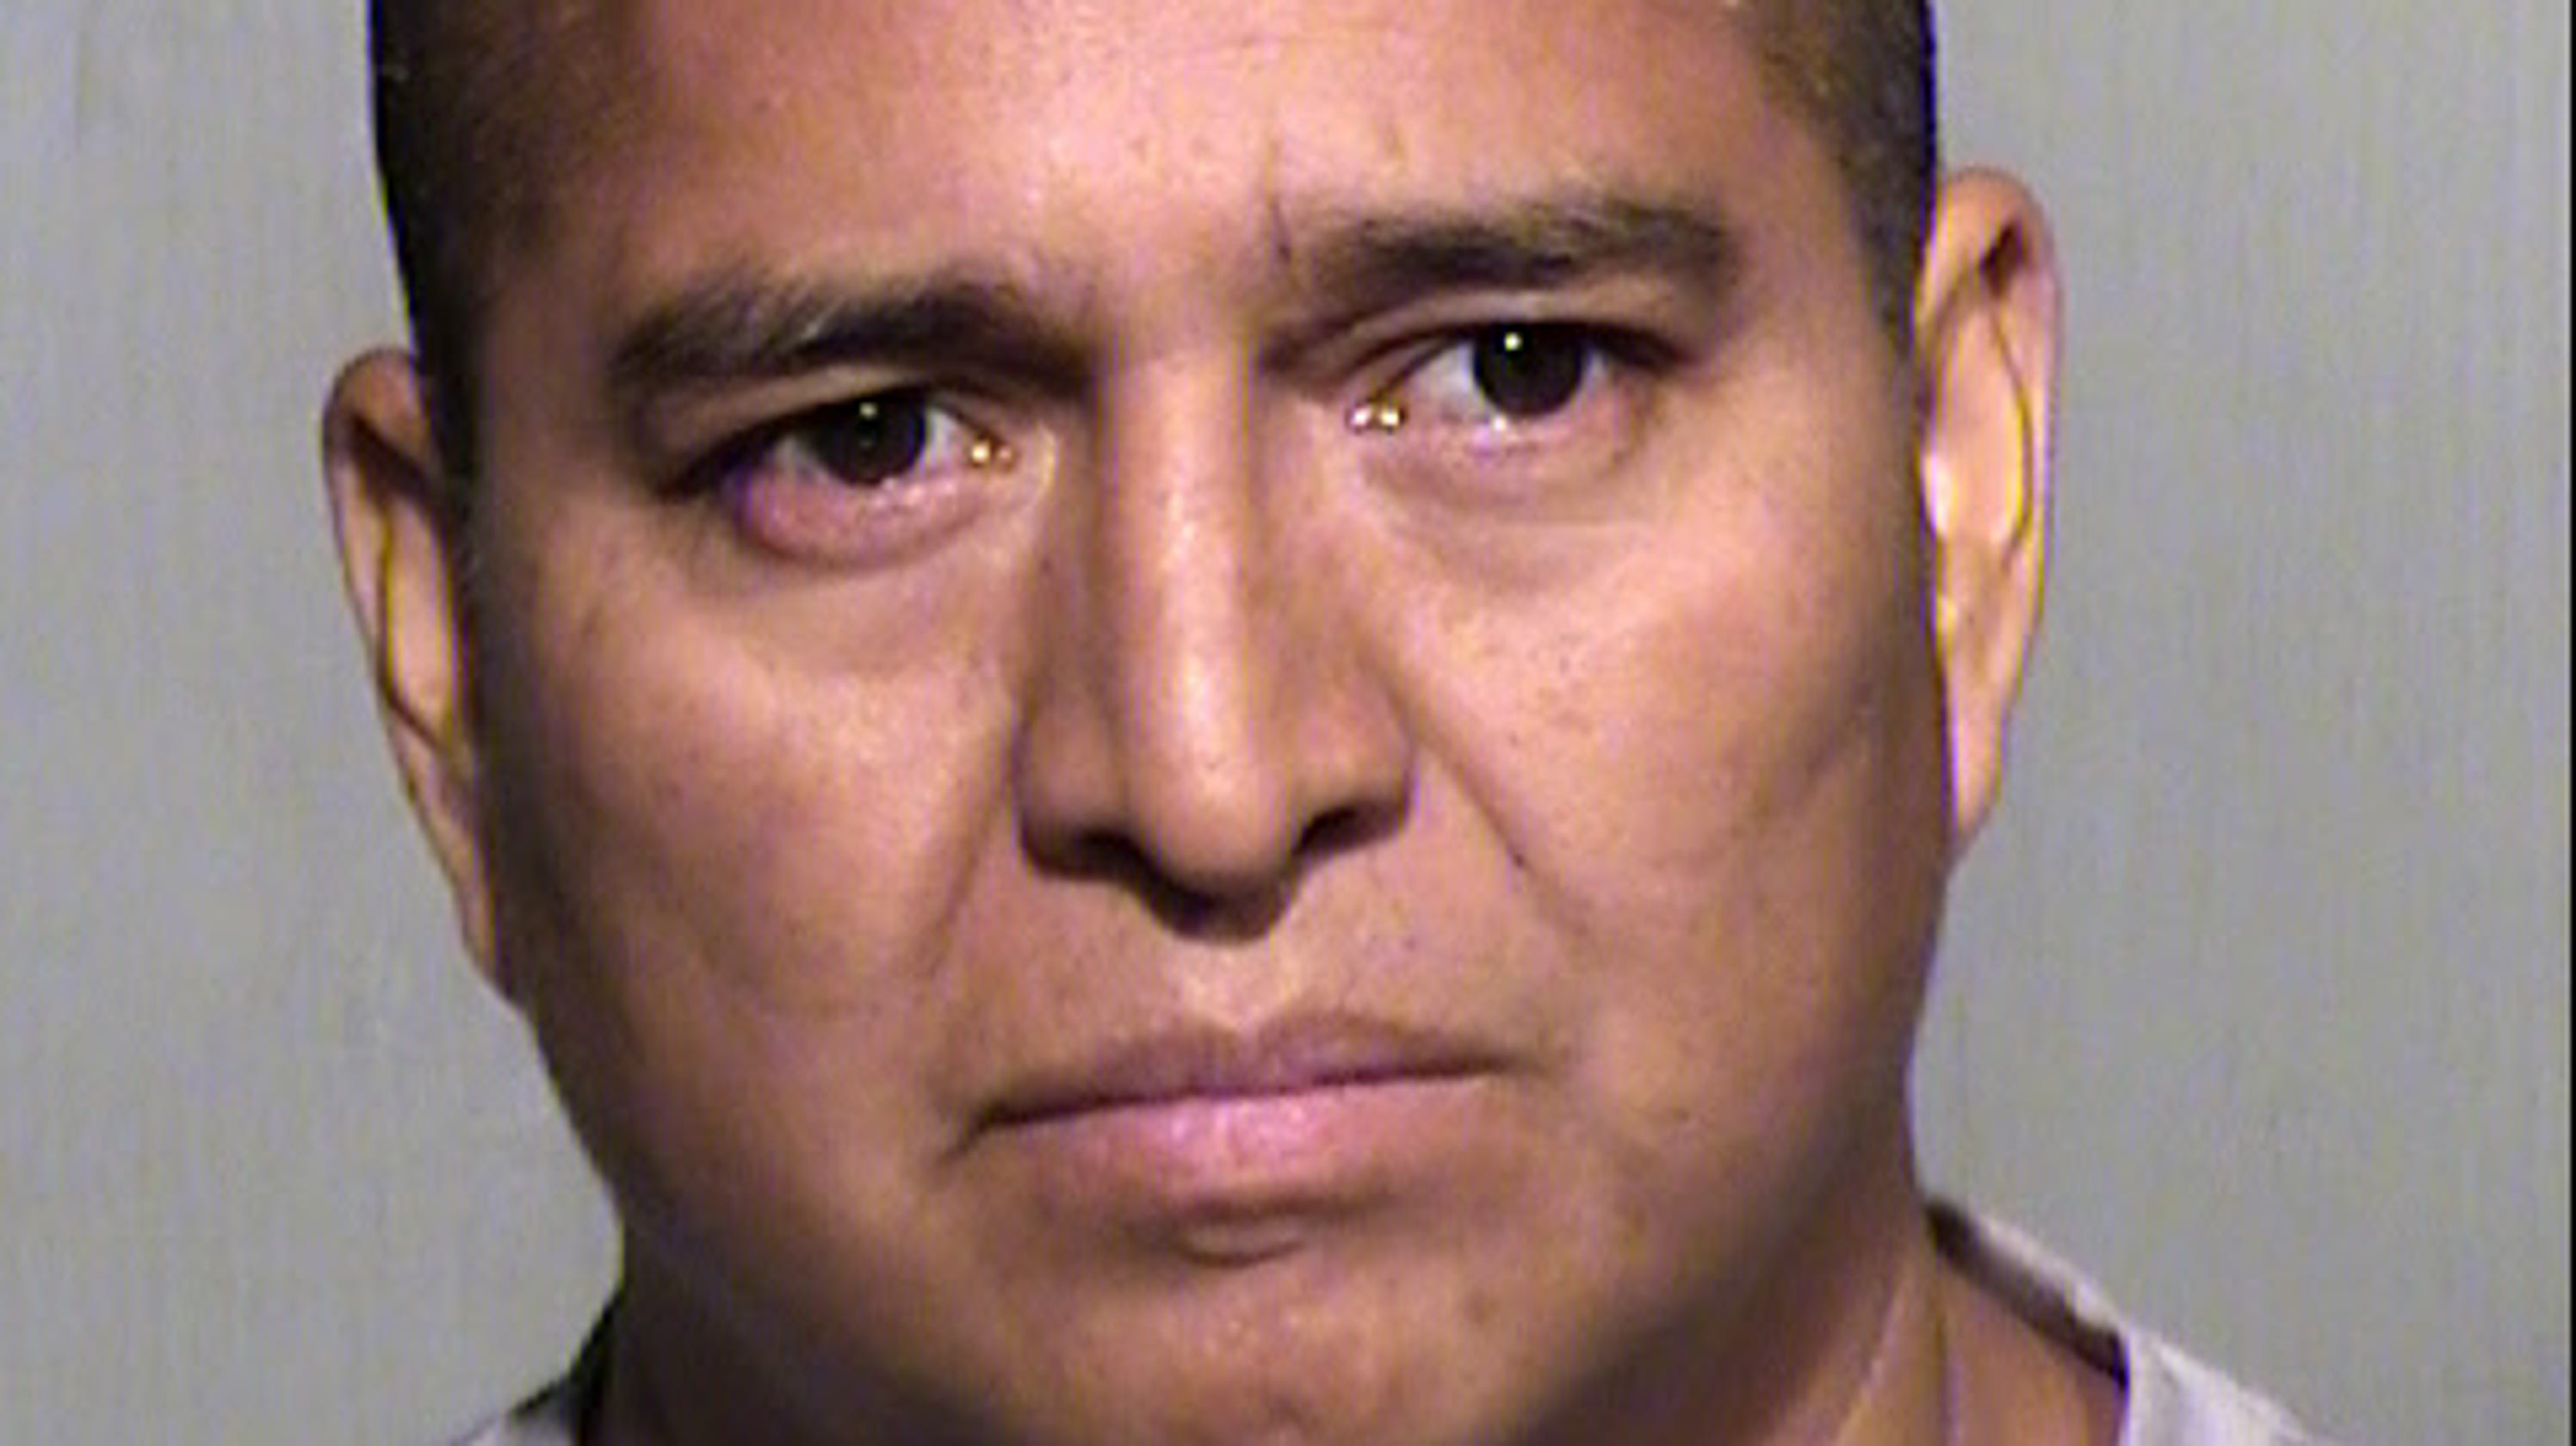 Scottsdale man accused of sexually abusing three young girls, police say